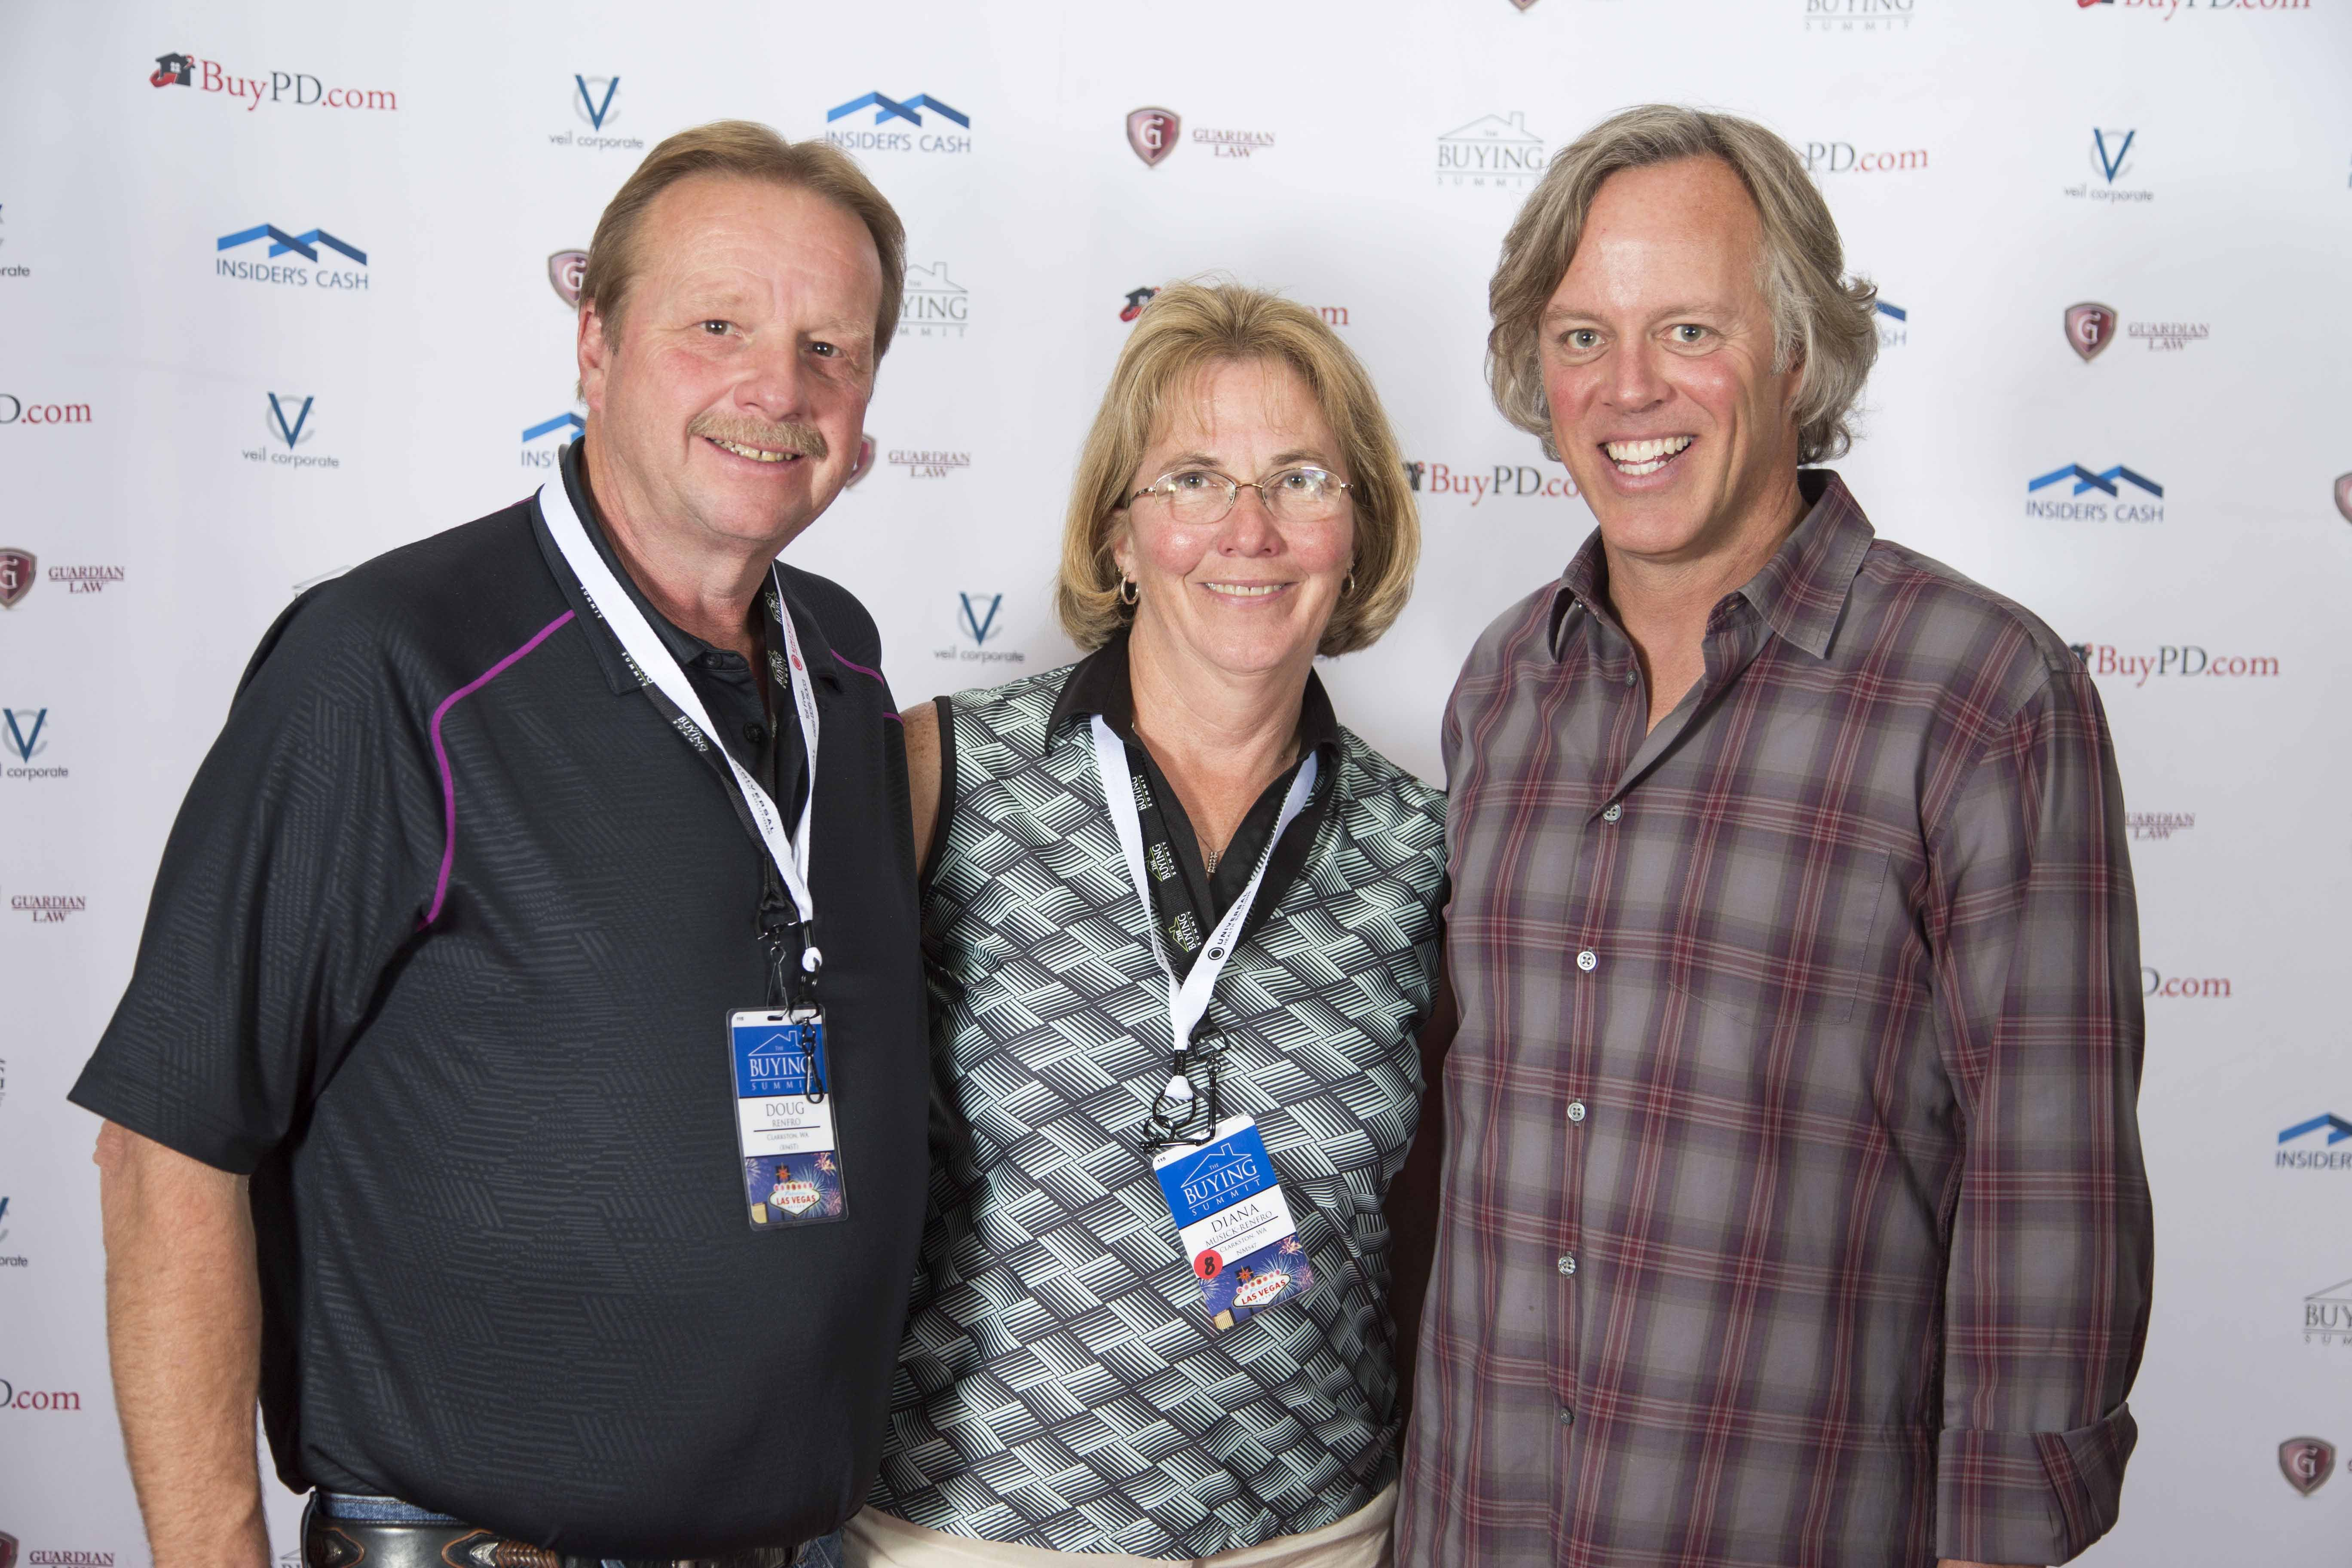 Scott Yancey Seminar If You Re Like Me Then To Miss Opportunities My Free Live Events Are Here Help Know How Can Invest Smart And